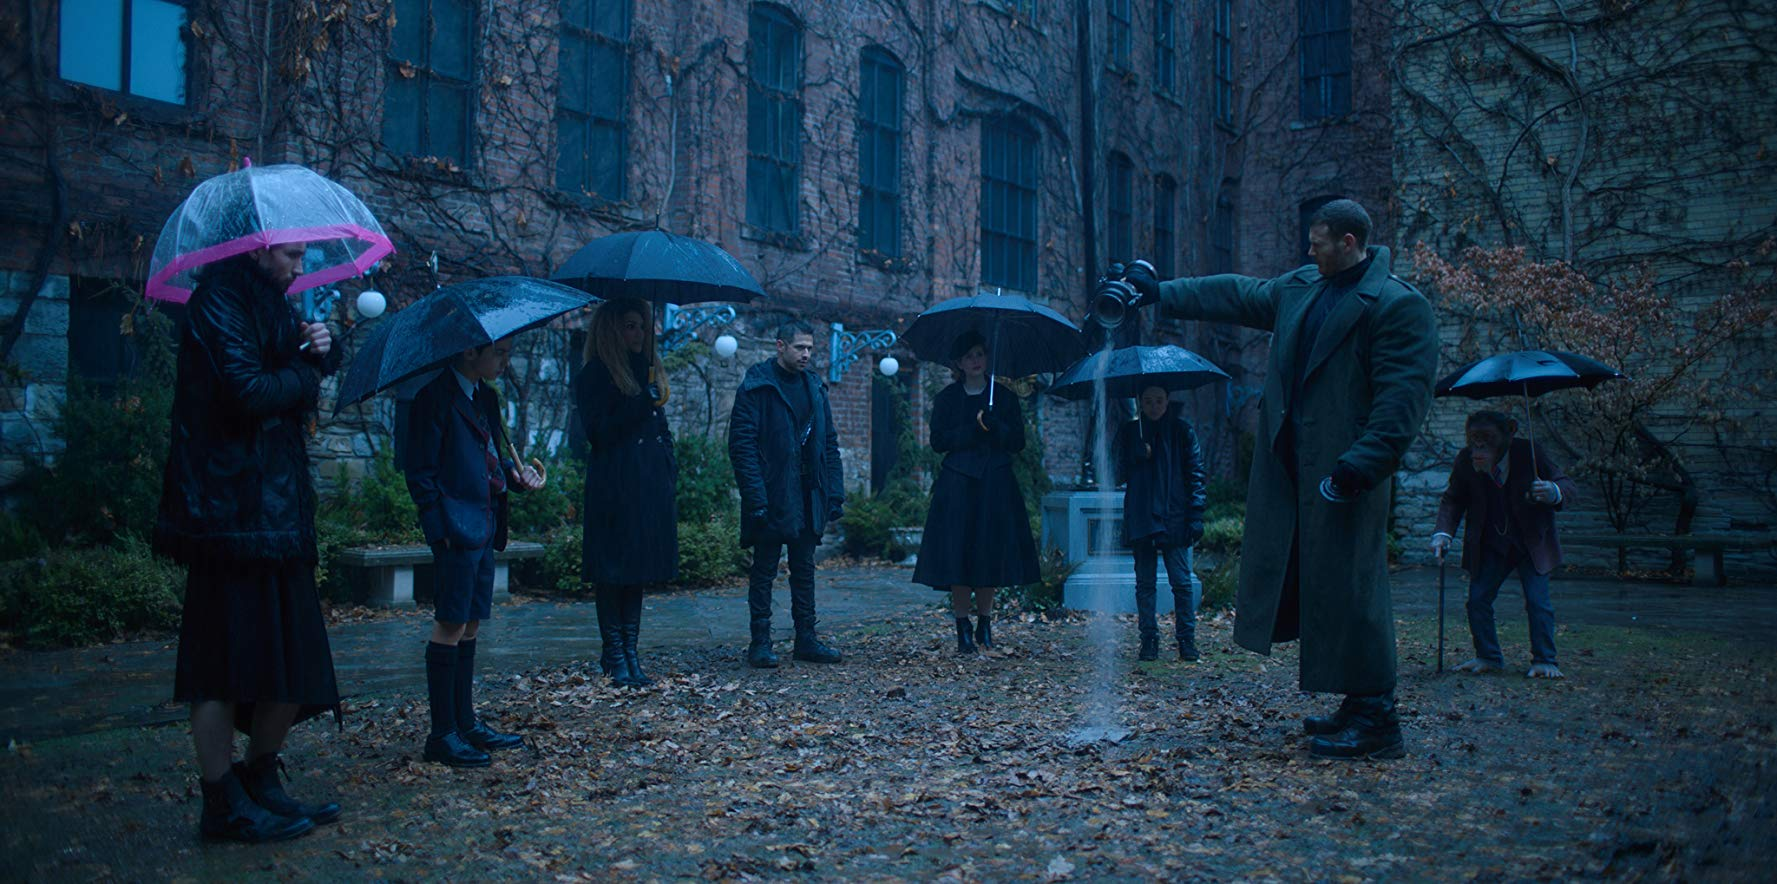 Adam Godley, Ellen Page, Robert Sheehan, Tom Hopper, David Castañeda, Aidan Gallagher, Jordan Claire Robbins, and Emmy Raver-Lampman in 'The Umbrella Academy'. (Source: IMDB)